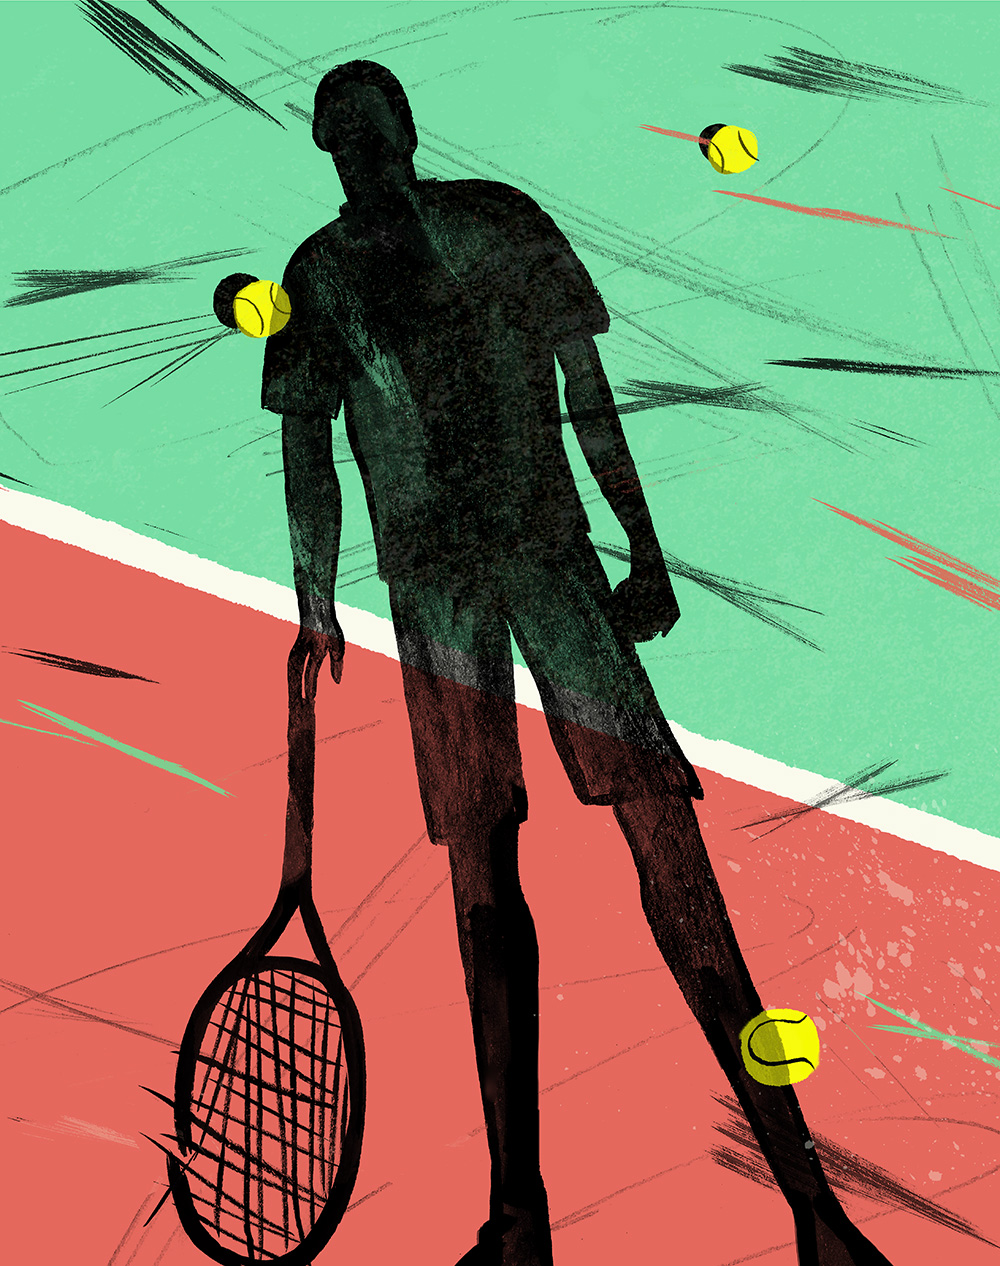 racquet_weartear_shadow_f_1000.jpg